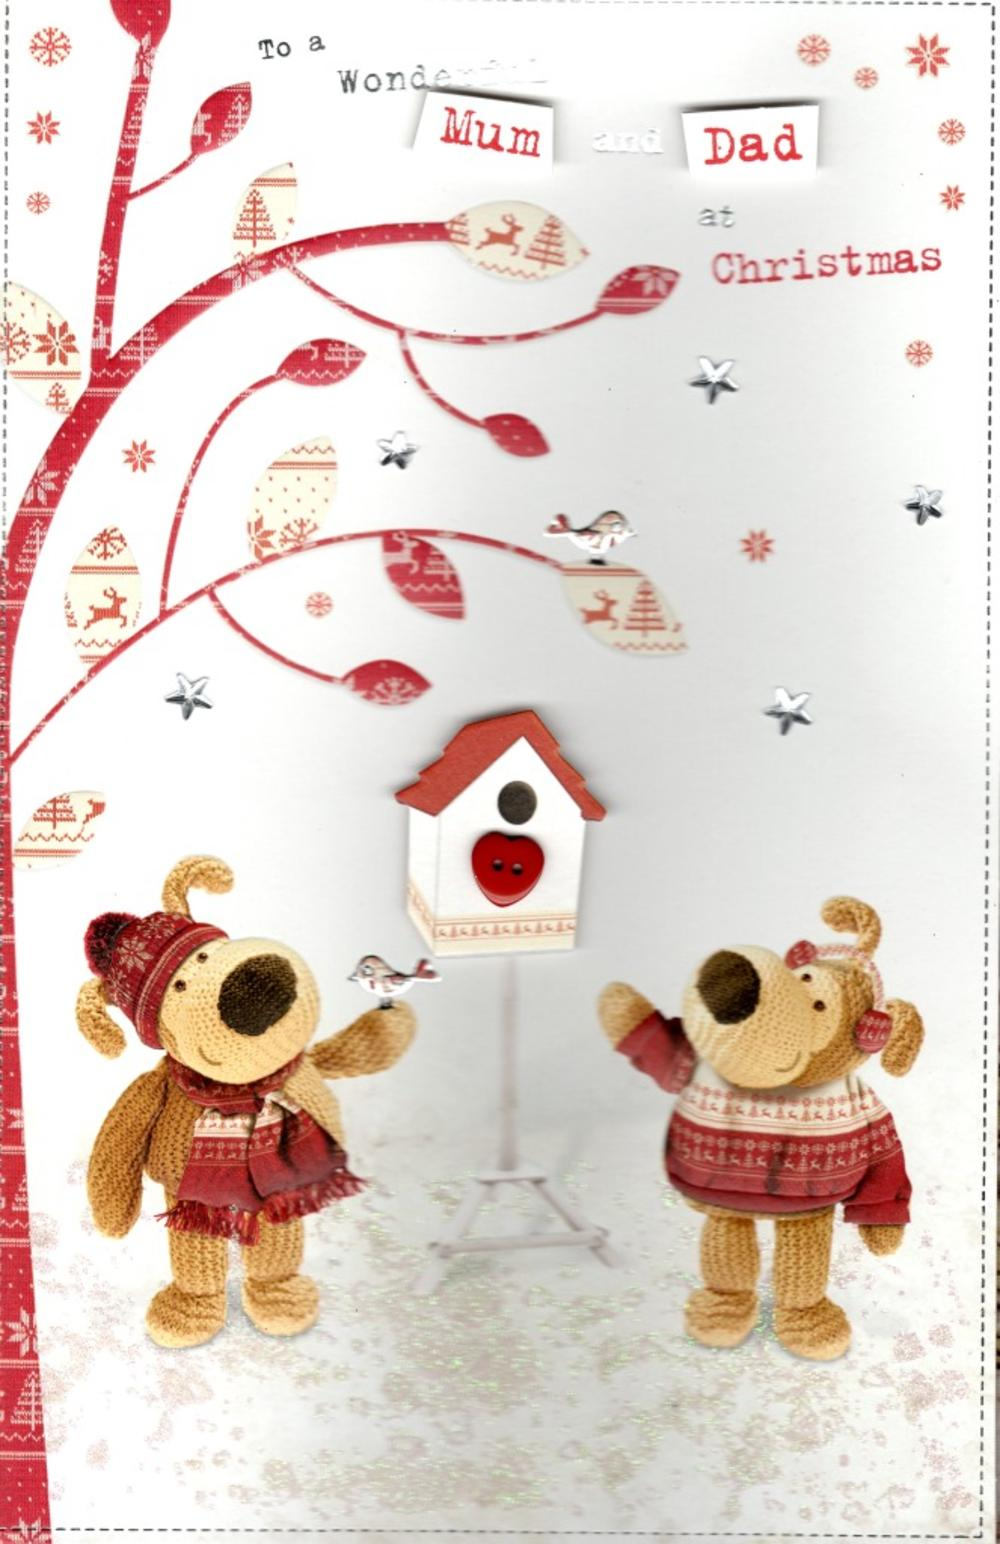 Boofle Mum & Dad Christmas Greeting Card